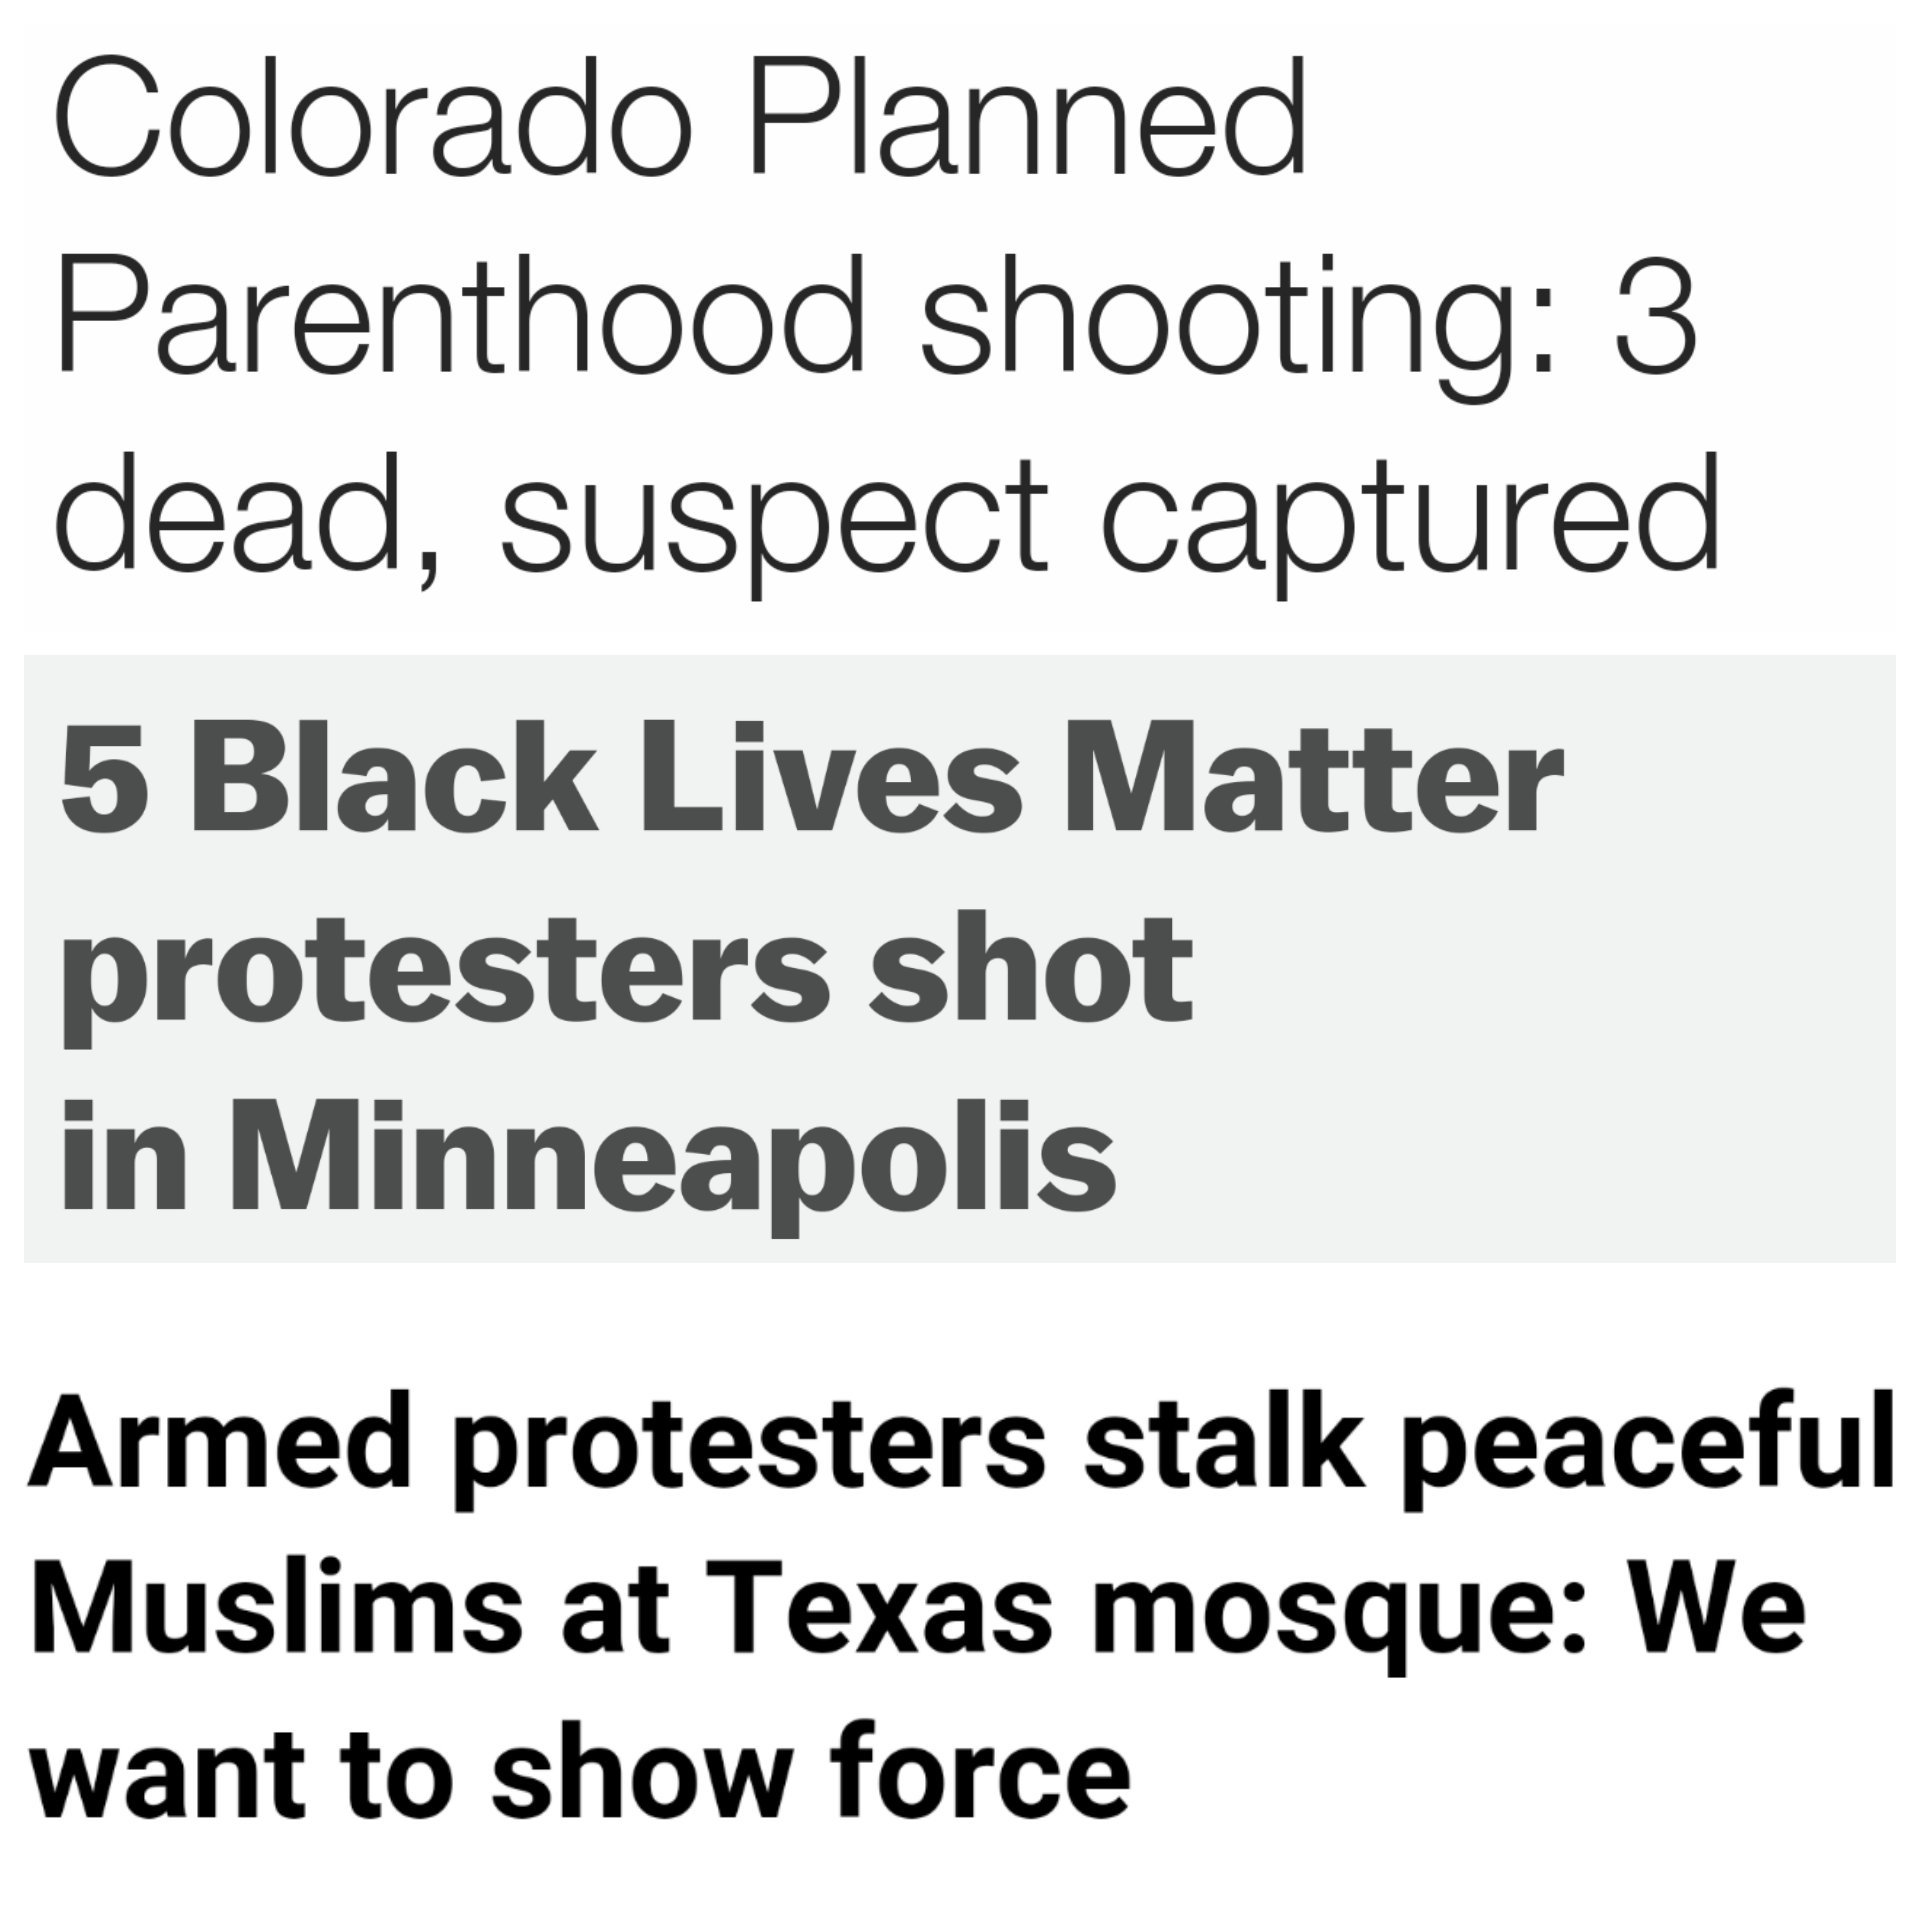 RT @BFriedmanDC: Lots of domestic terrorism in the U.S. this week. All angry, armed white guys. https://t.co/Qv6FNemqz1